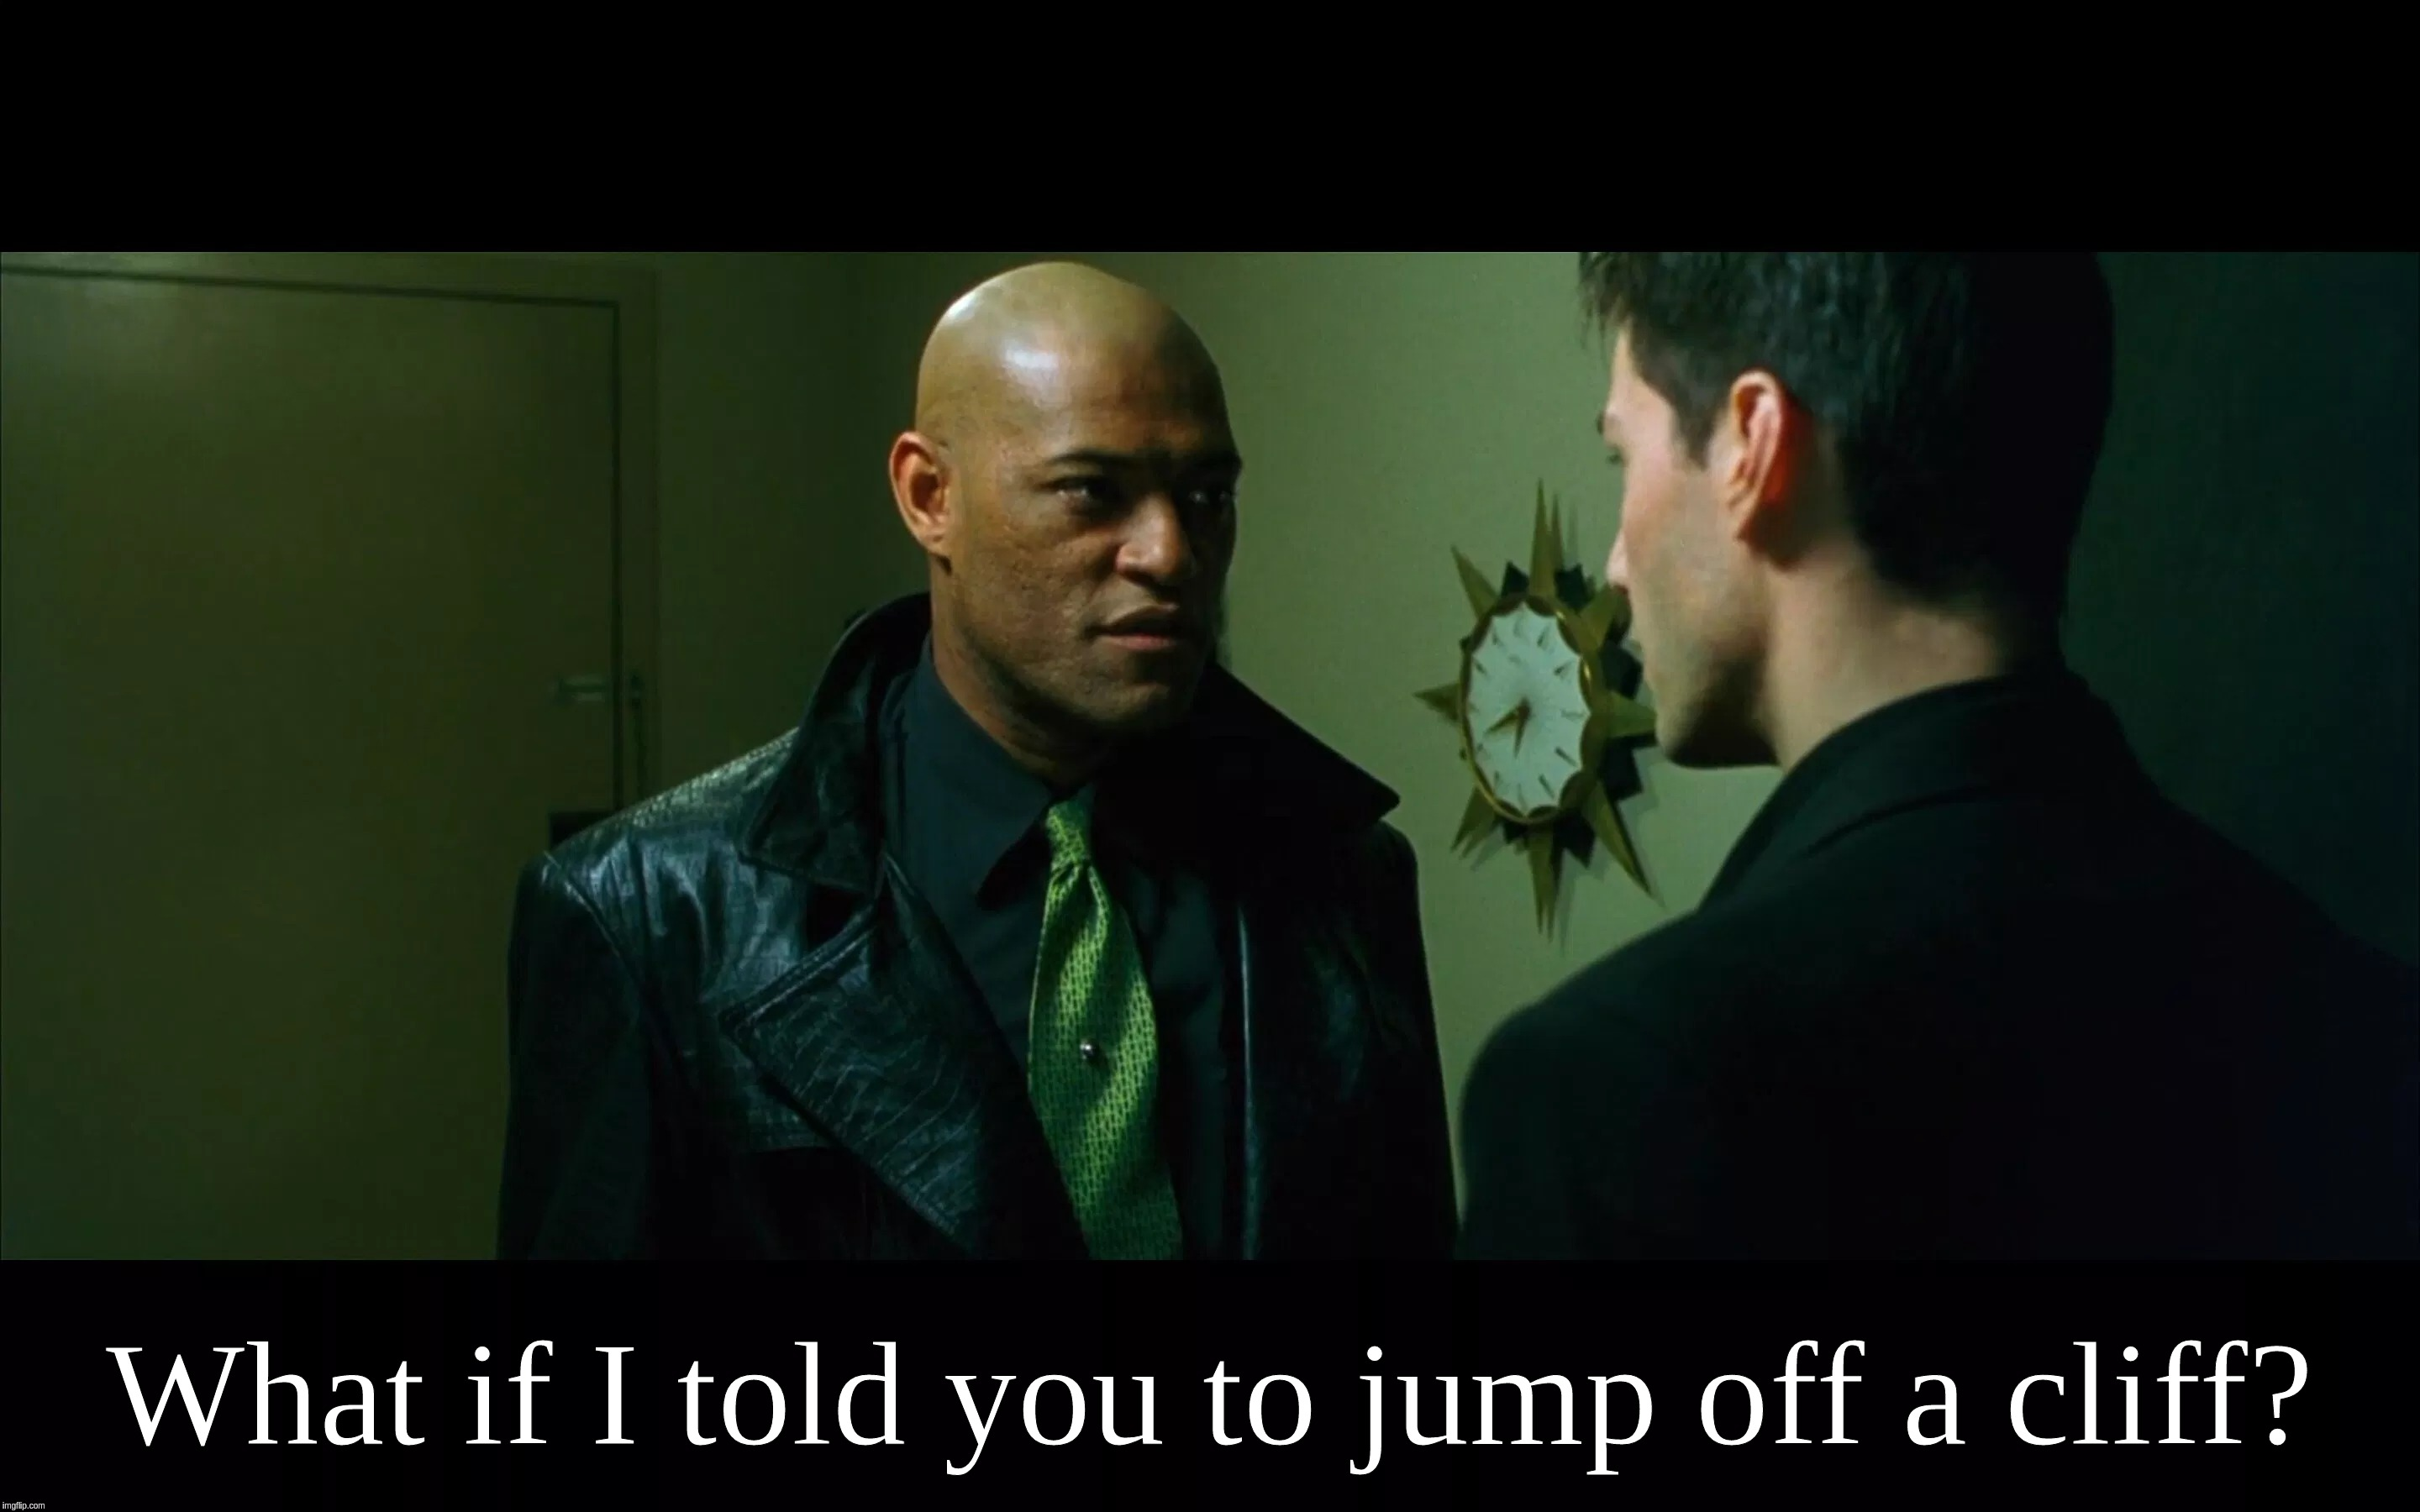 My tricks, cuckoldry; 'What if I told you to jump off a cliff'; Morpheus synonyms | What if I told you to jump off a cliff? | image tagged in matrix,cuck,morpheus,neo,jump,cliff | made w/ Imgflip meme maker